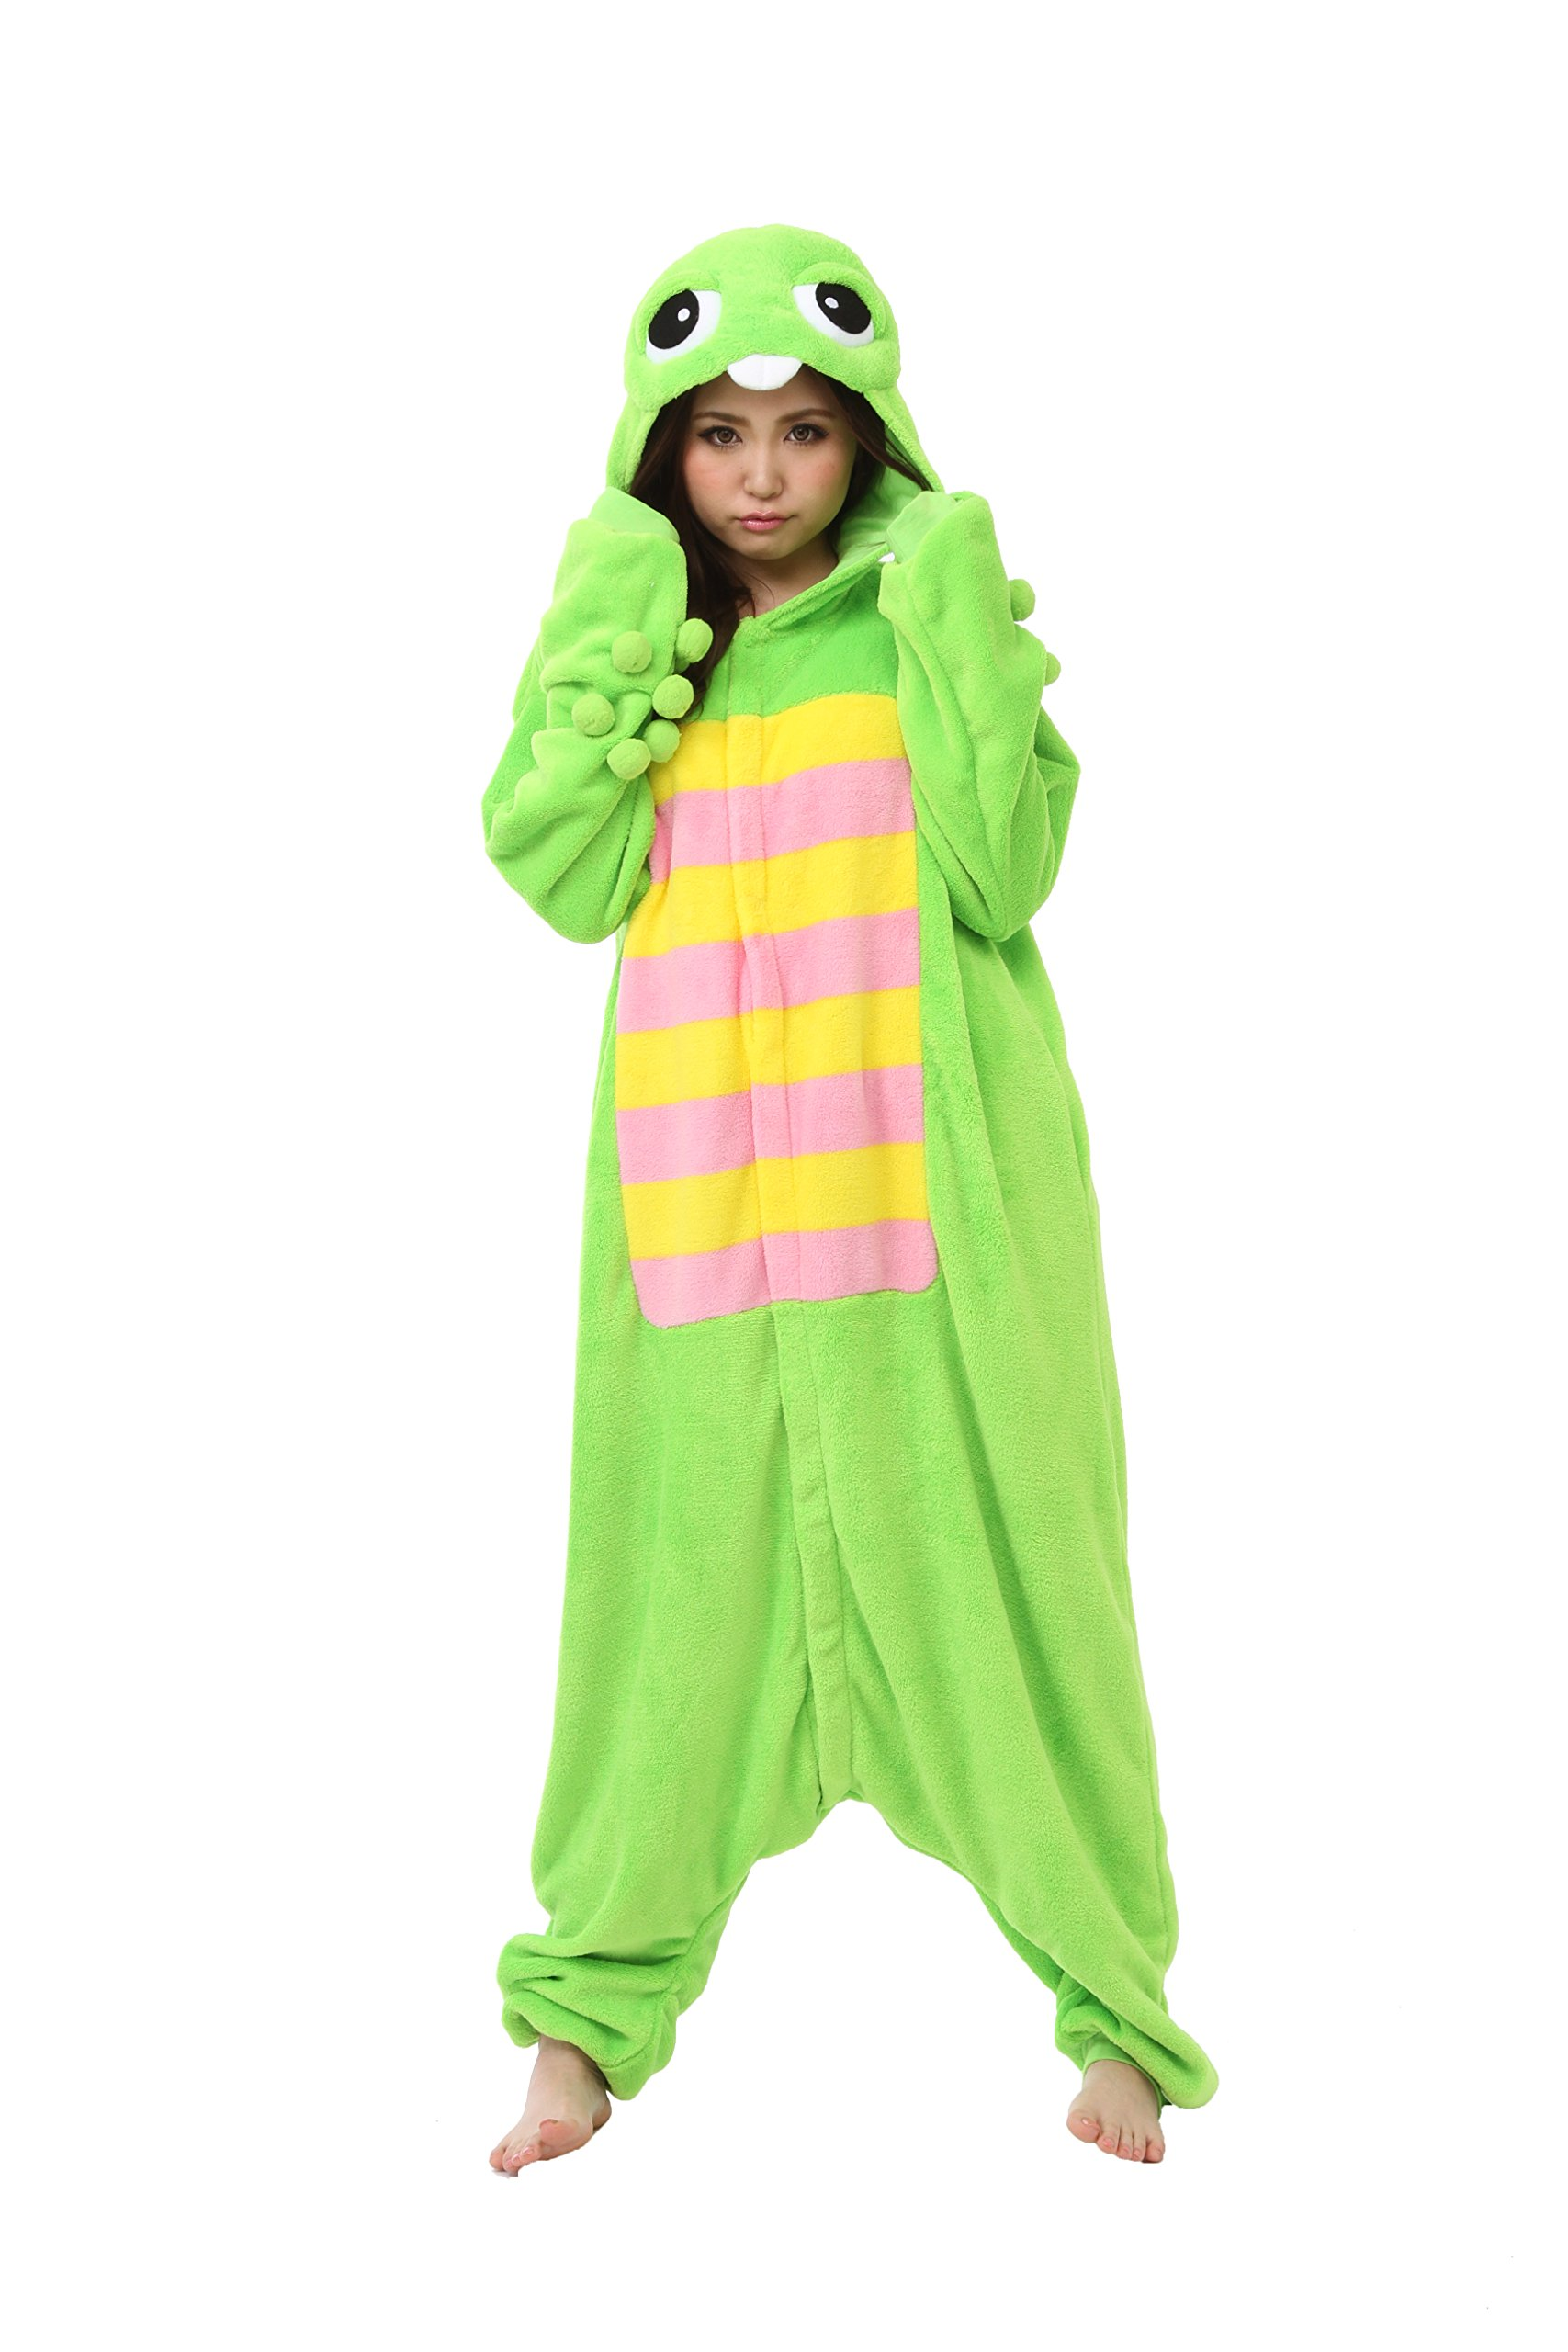 Gachapin Kigurumi - Adults Costume